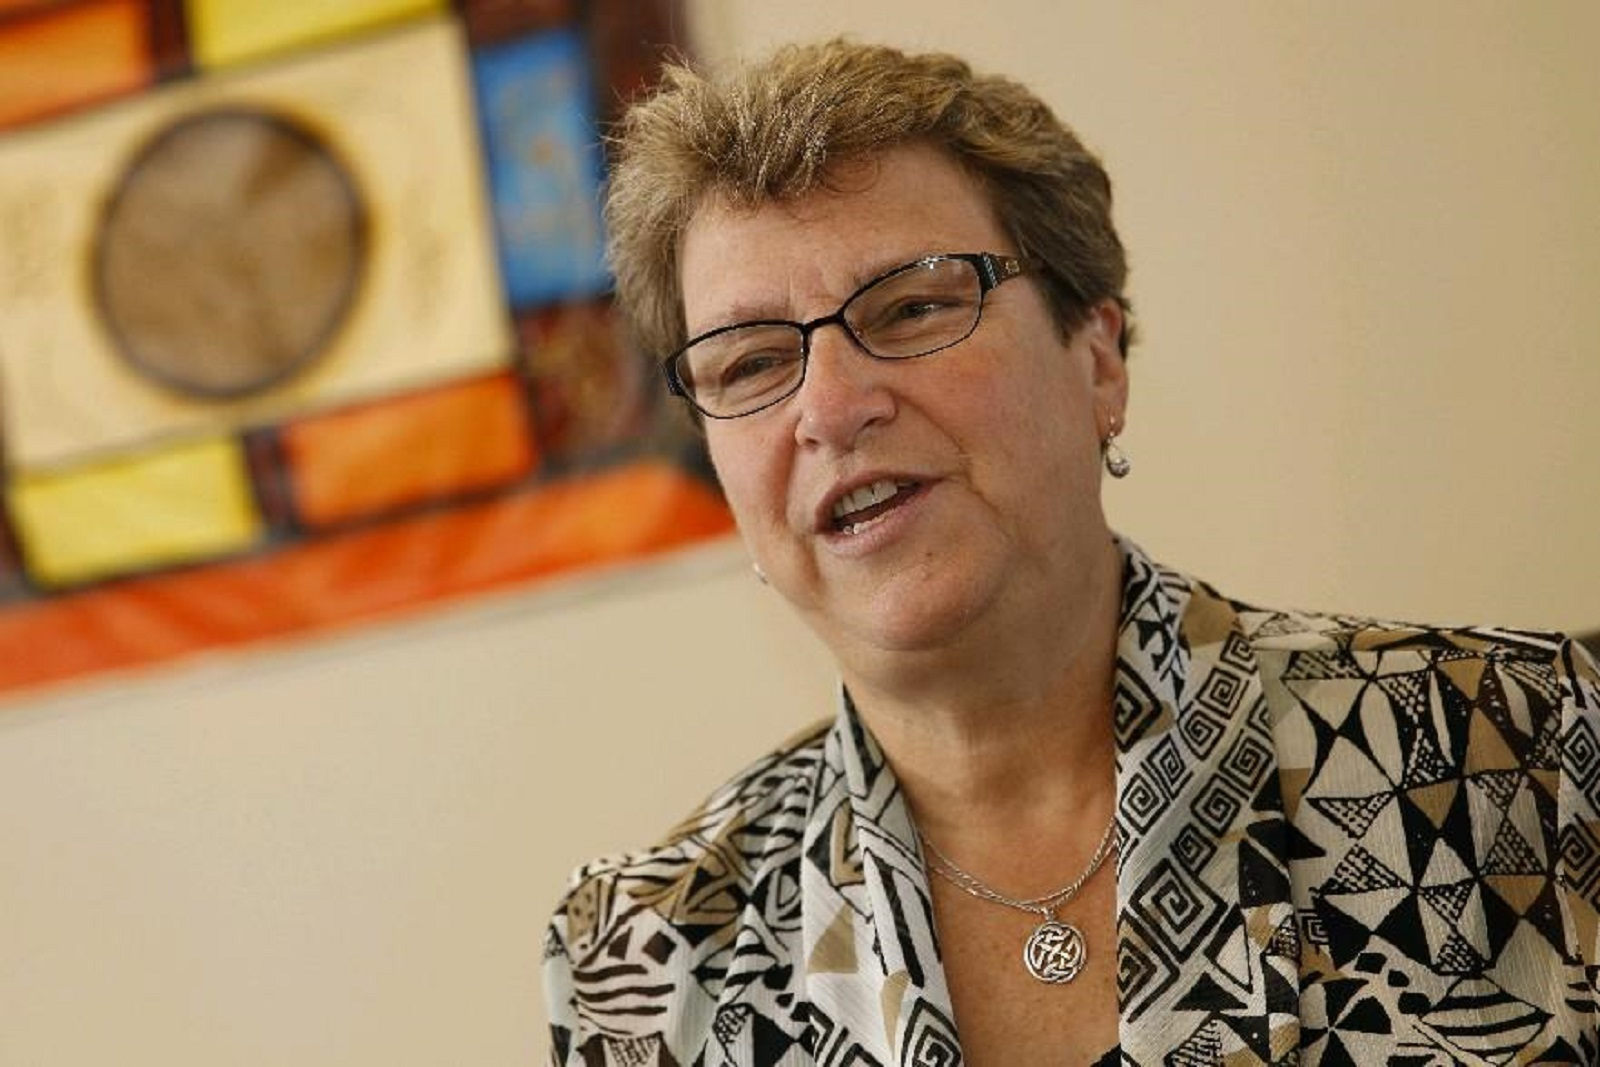 Suzanne Bissonette is executive director of Cazenovia Recovery Systems. (Sharon Cantillon/Buffalo News file photo)